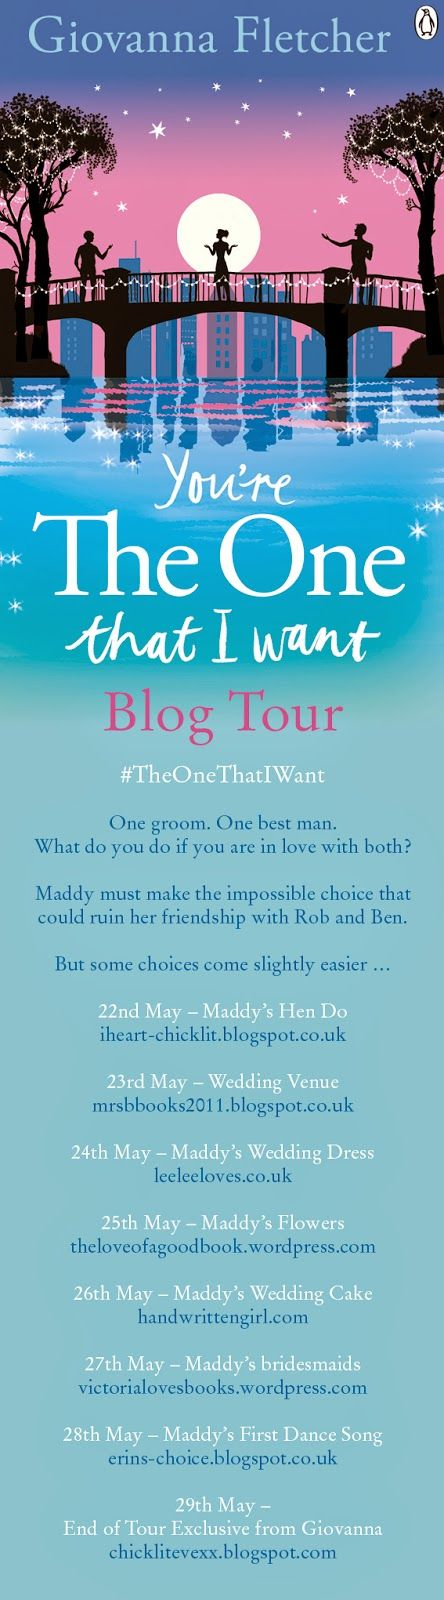 The Book Corner: You're The One That I Want - Giovanna Fletcher (Wedding Venue Exclusive!)